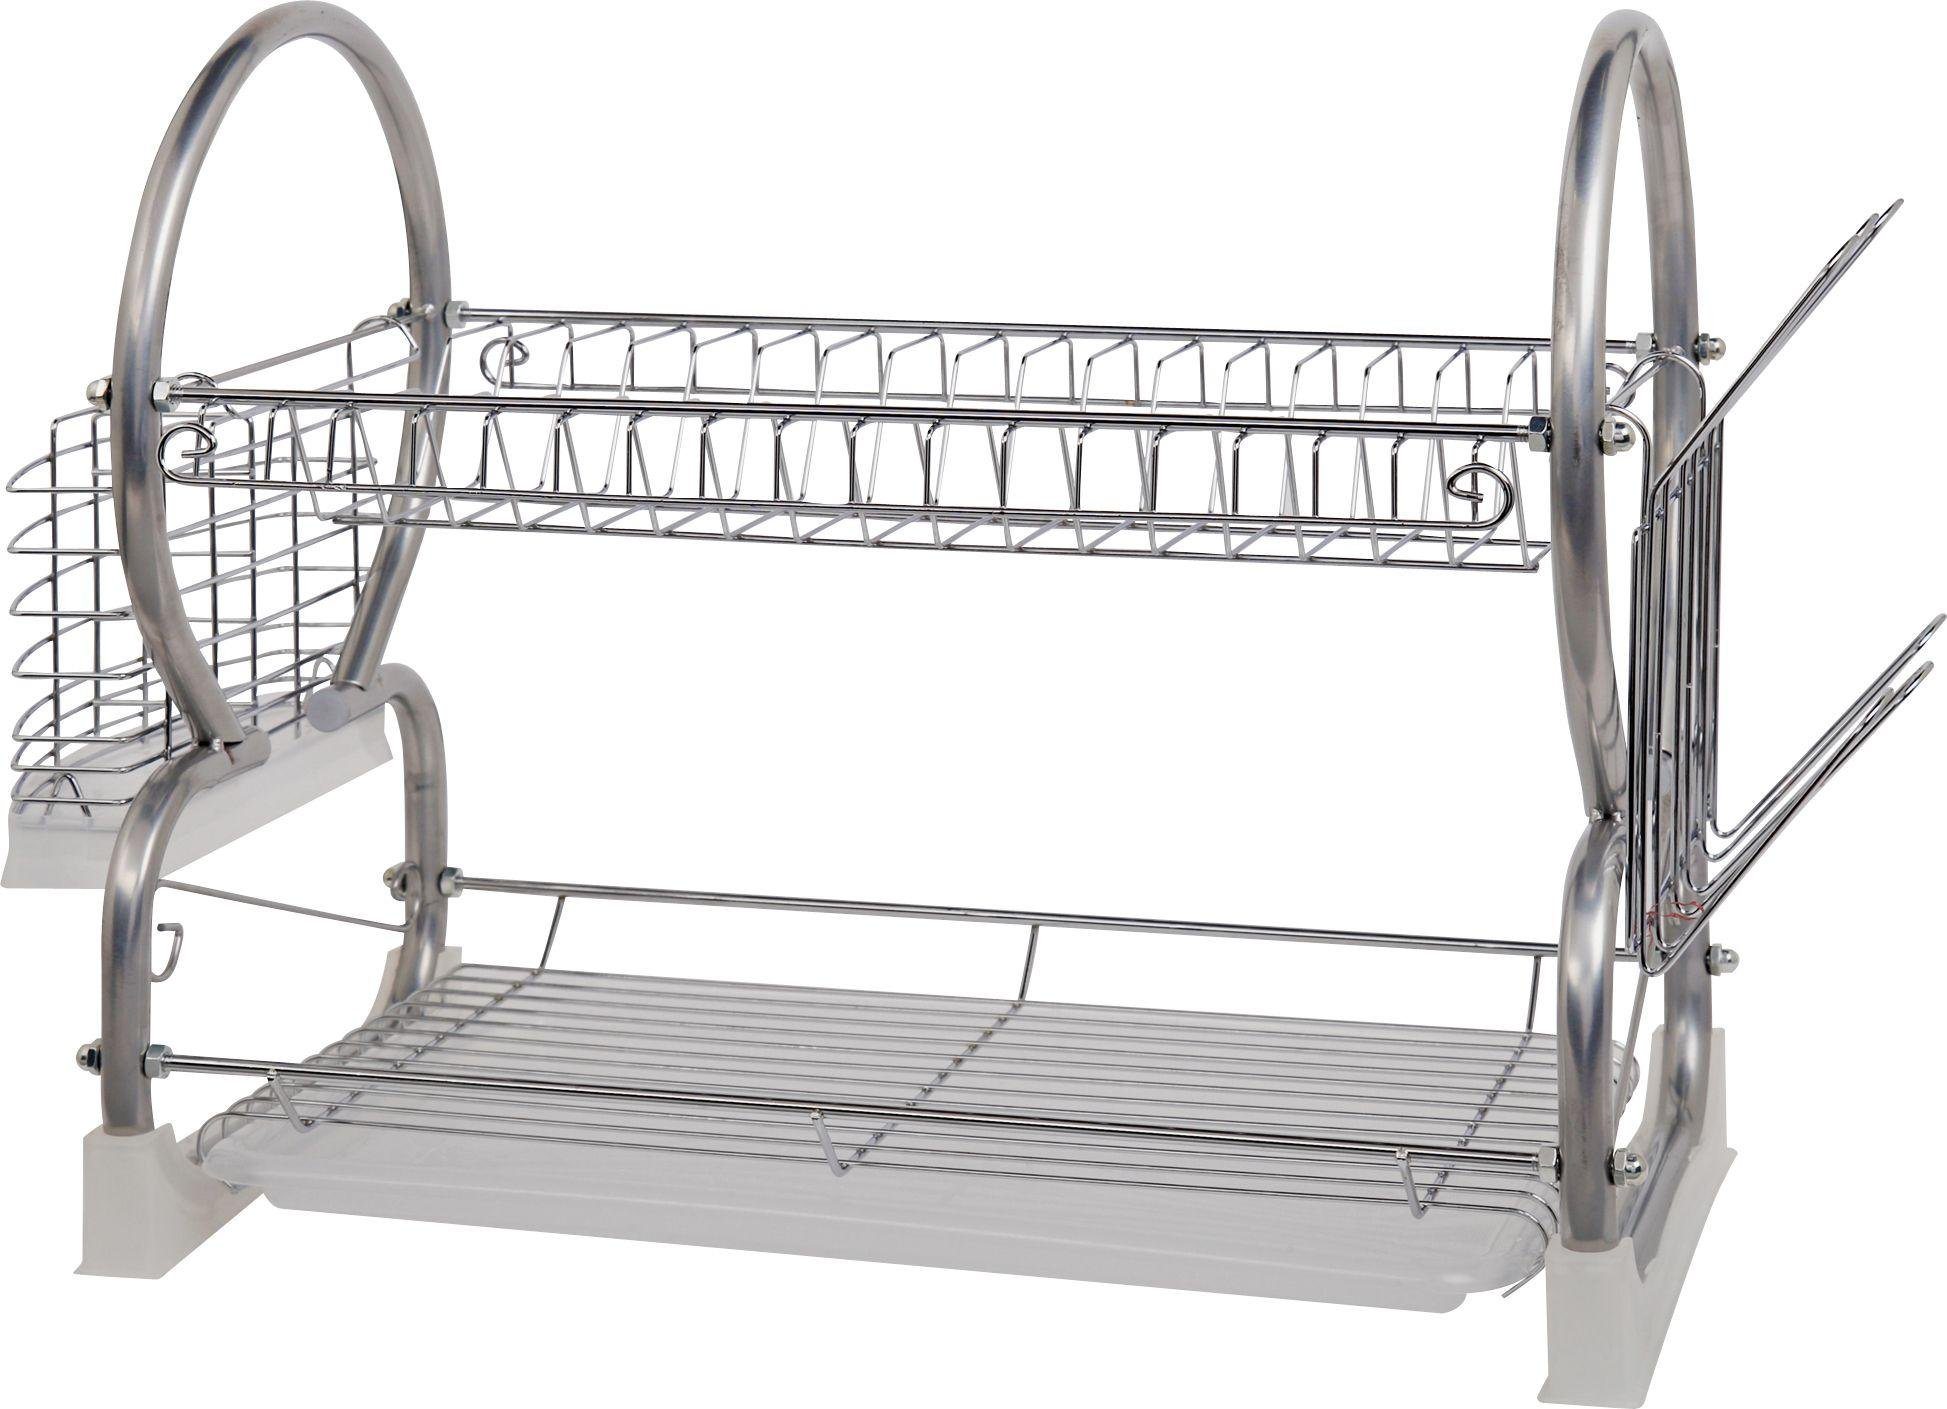 Image of HOME - 2 Tier Dish Rack - Silver